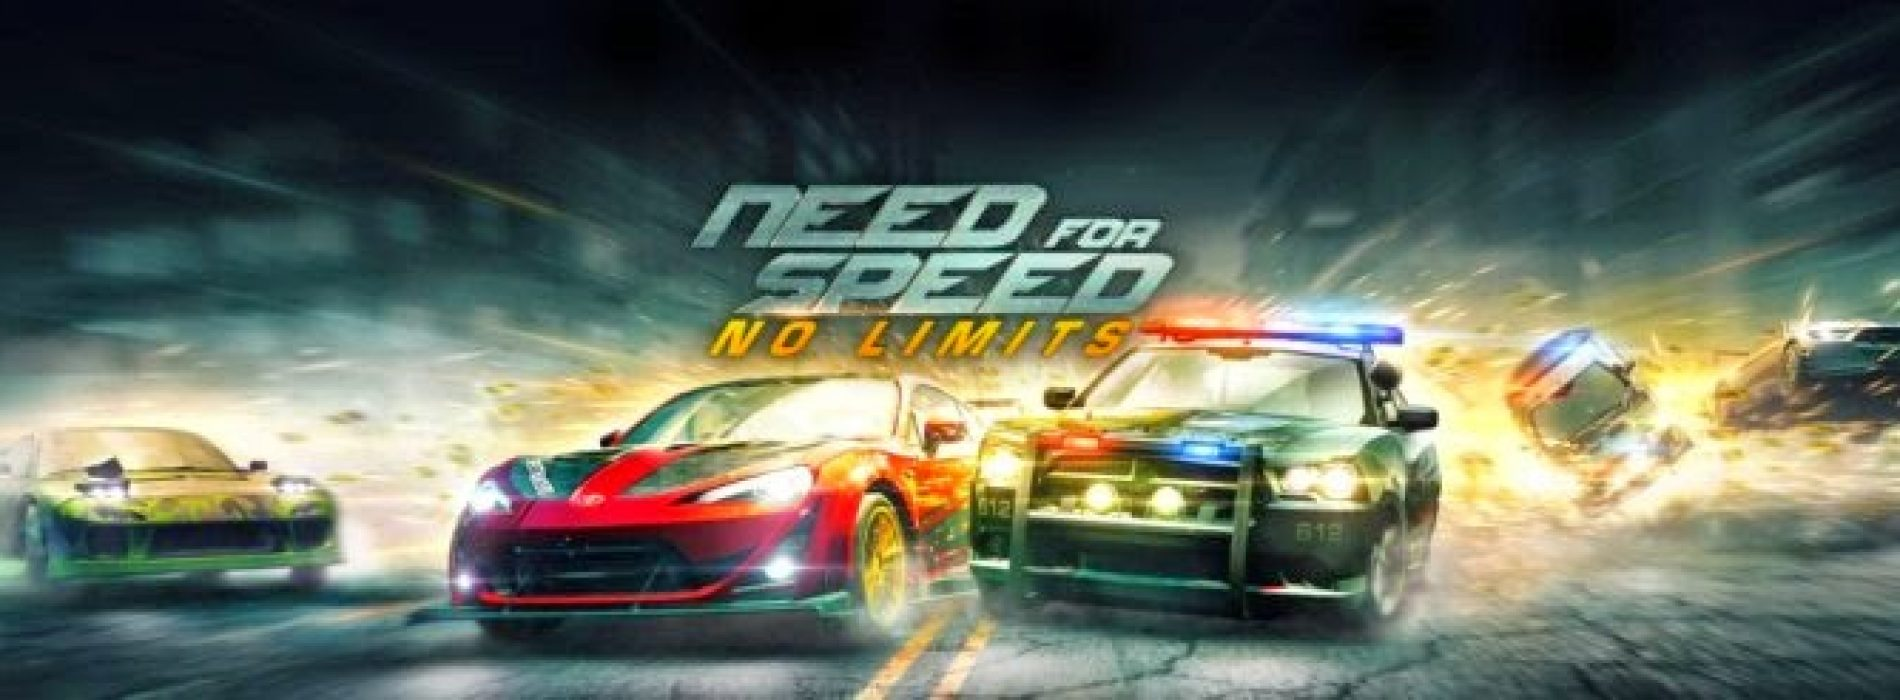 Prepare yourself to get out of the limit with the all new Need For Speed: No Limits